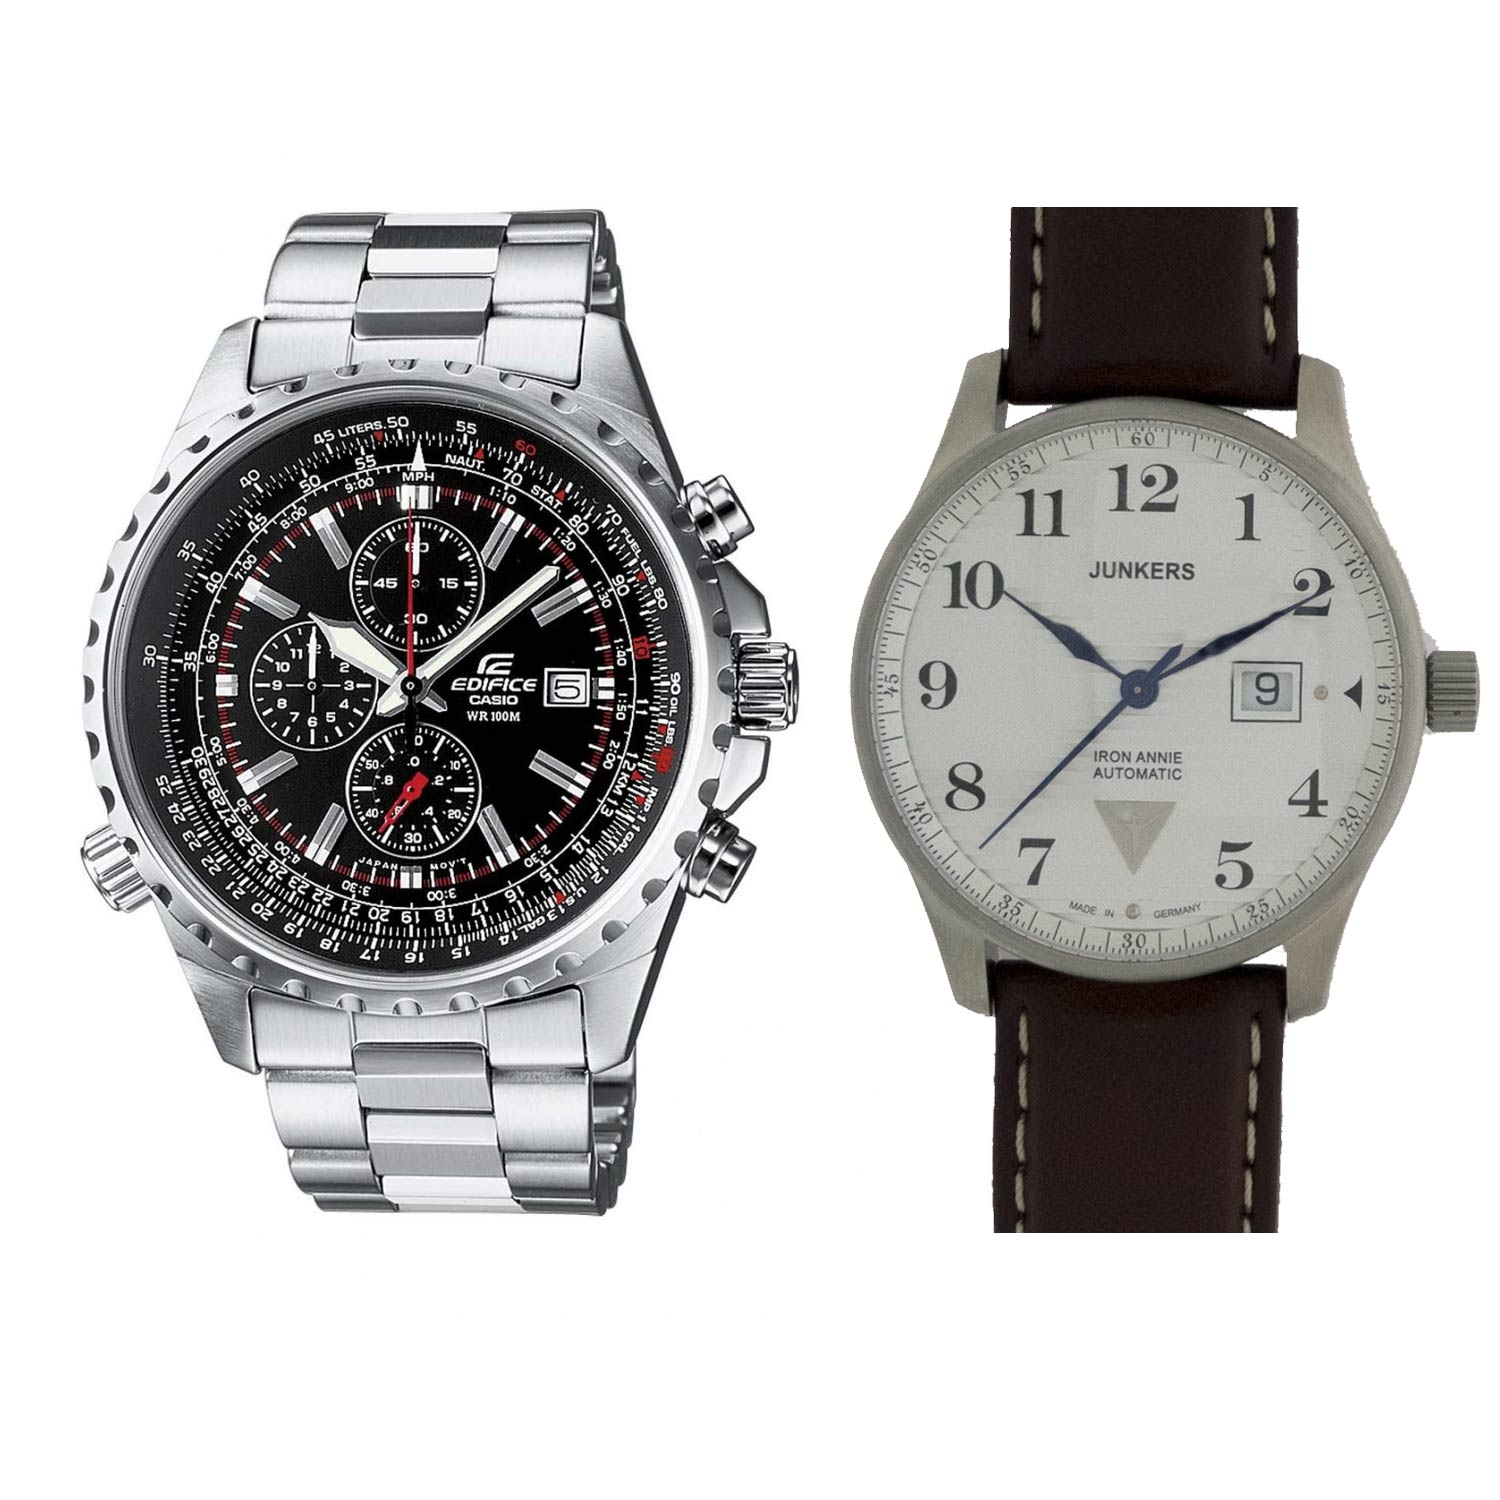 Chronograph vs Chronometer